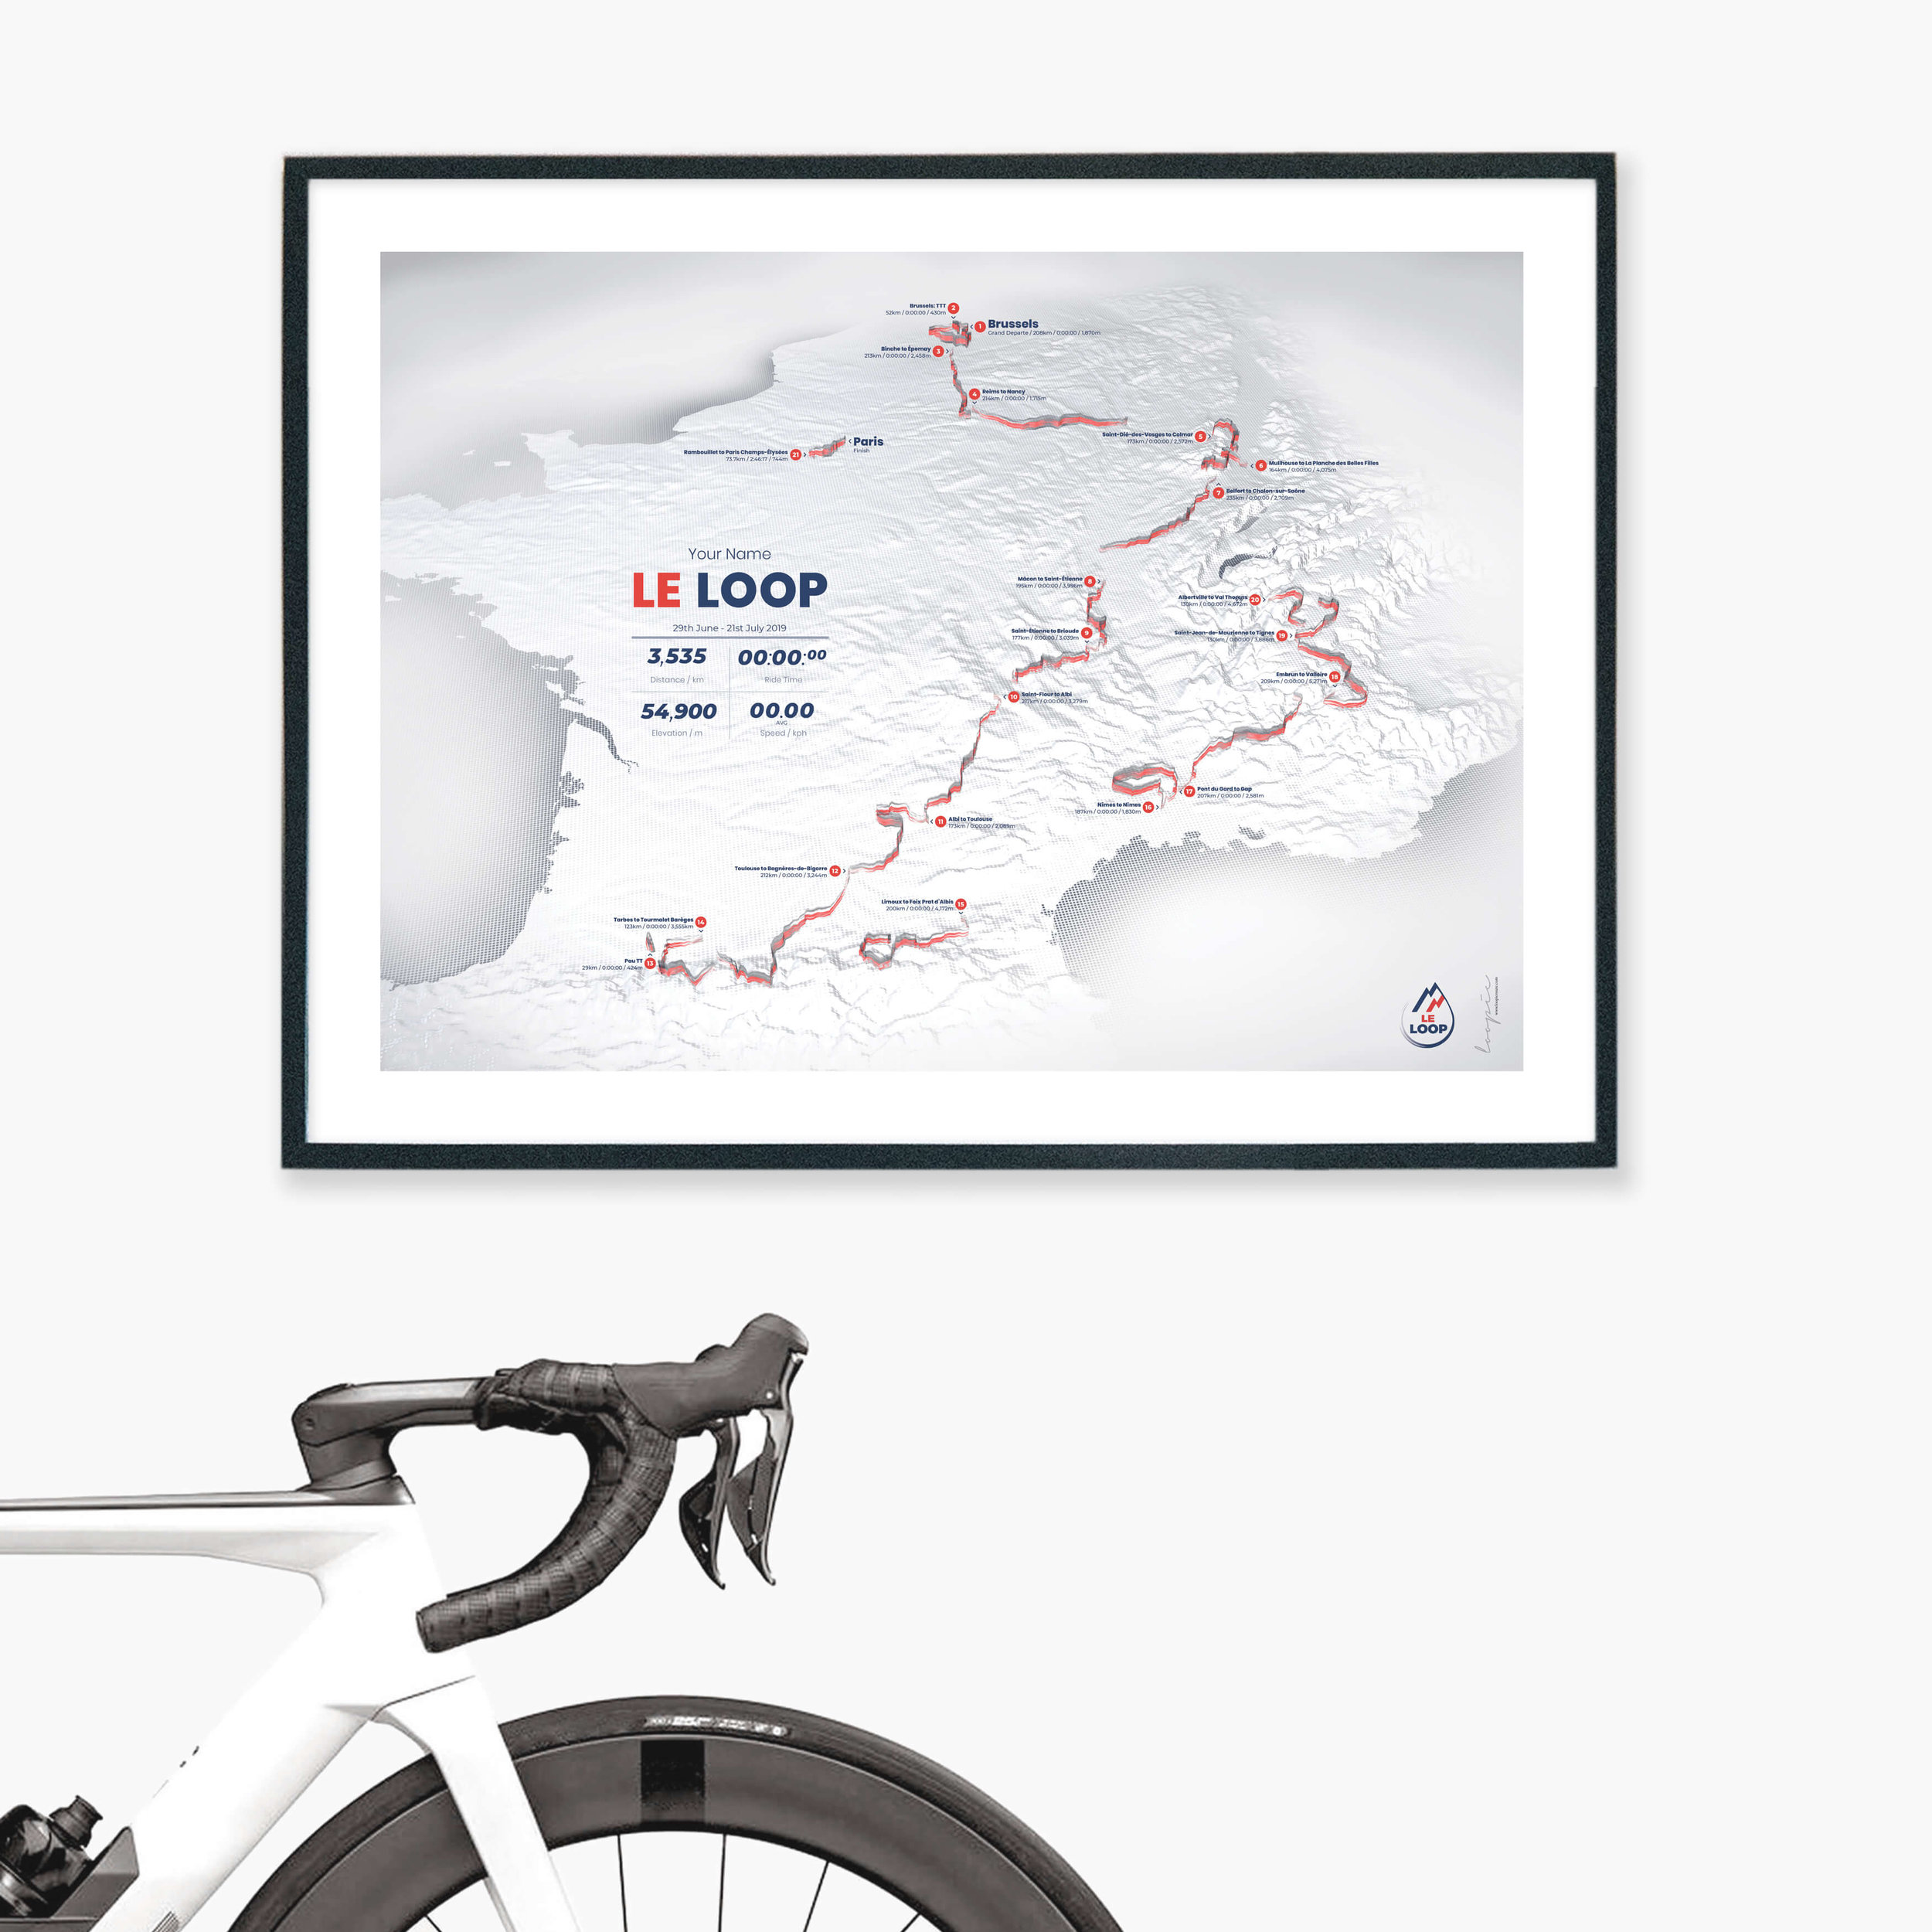 Le Loop2019 - All 21 stages of the 2019 Tour de France